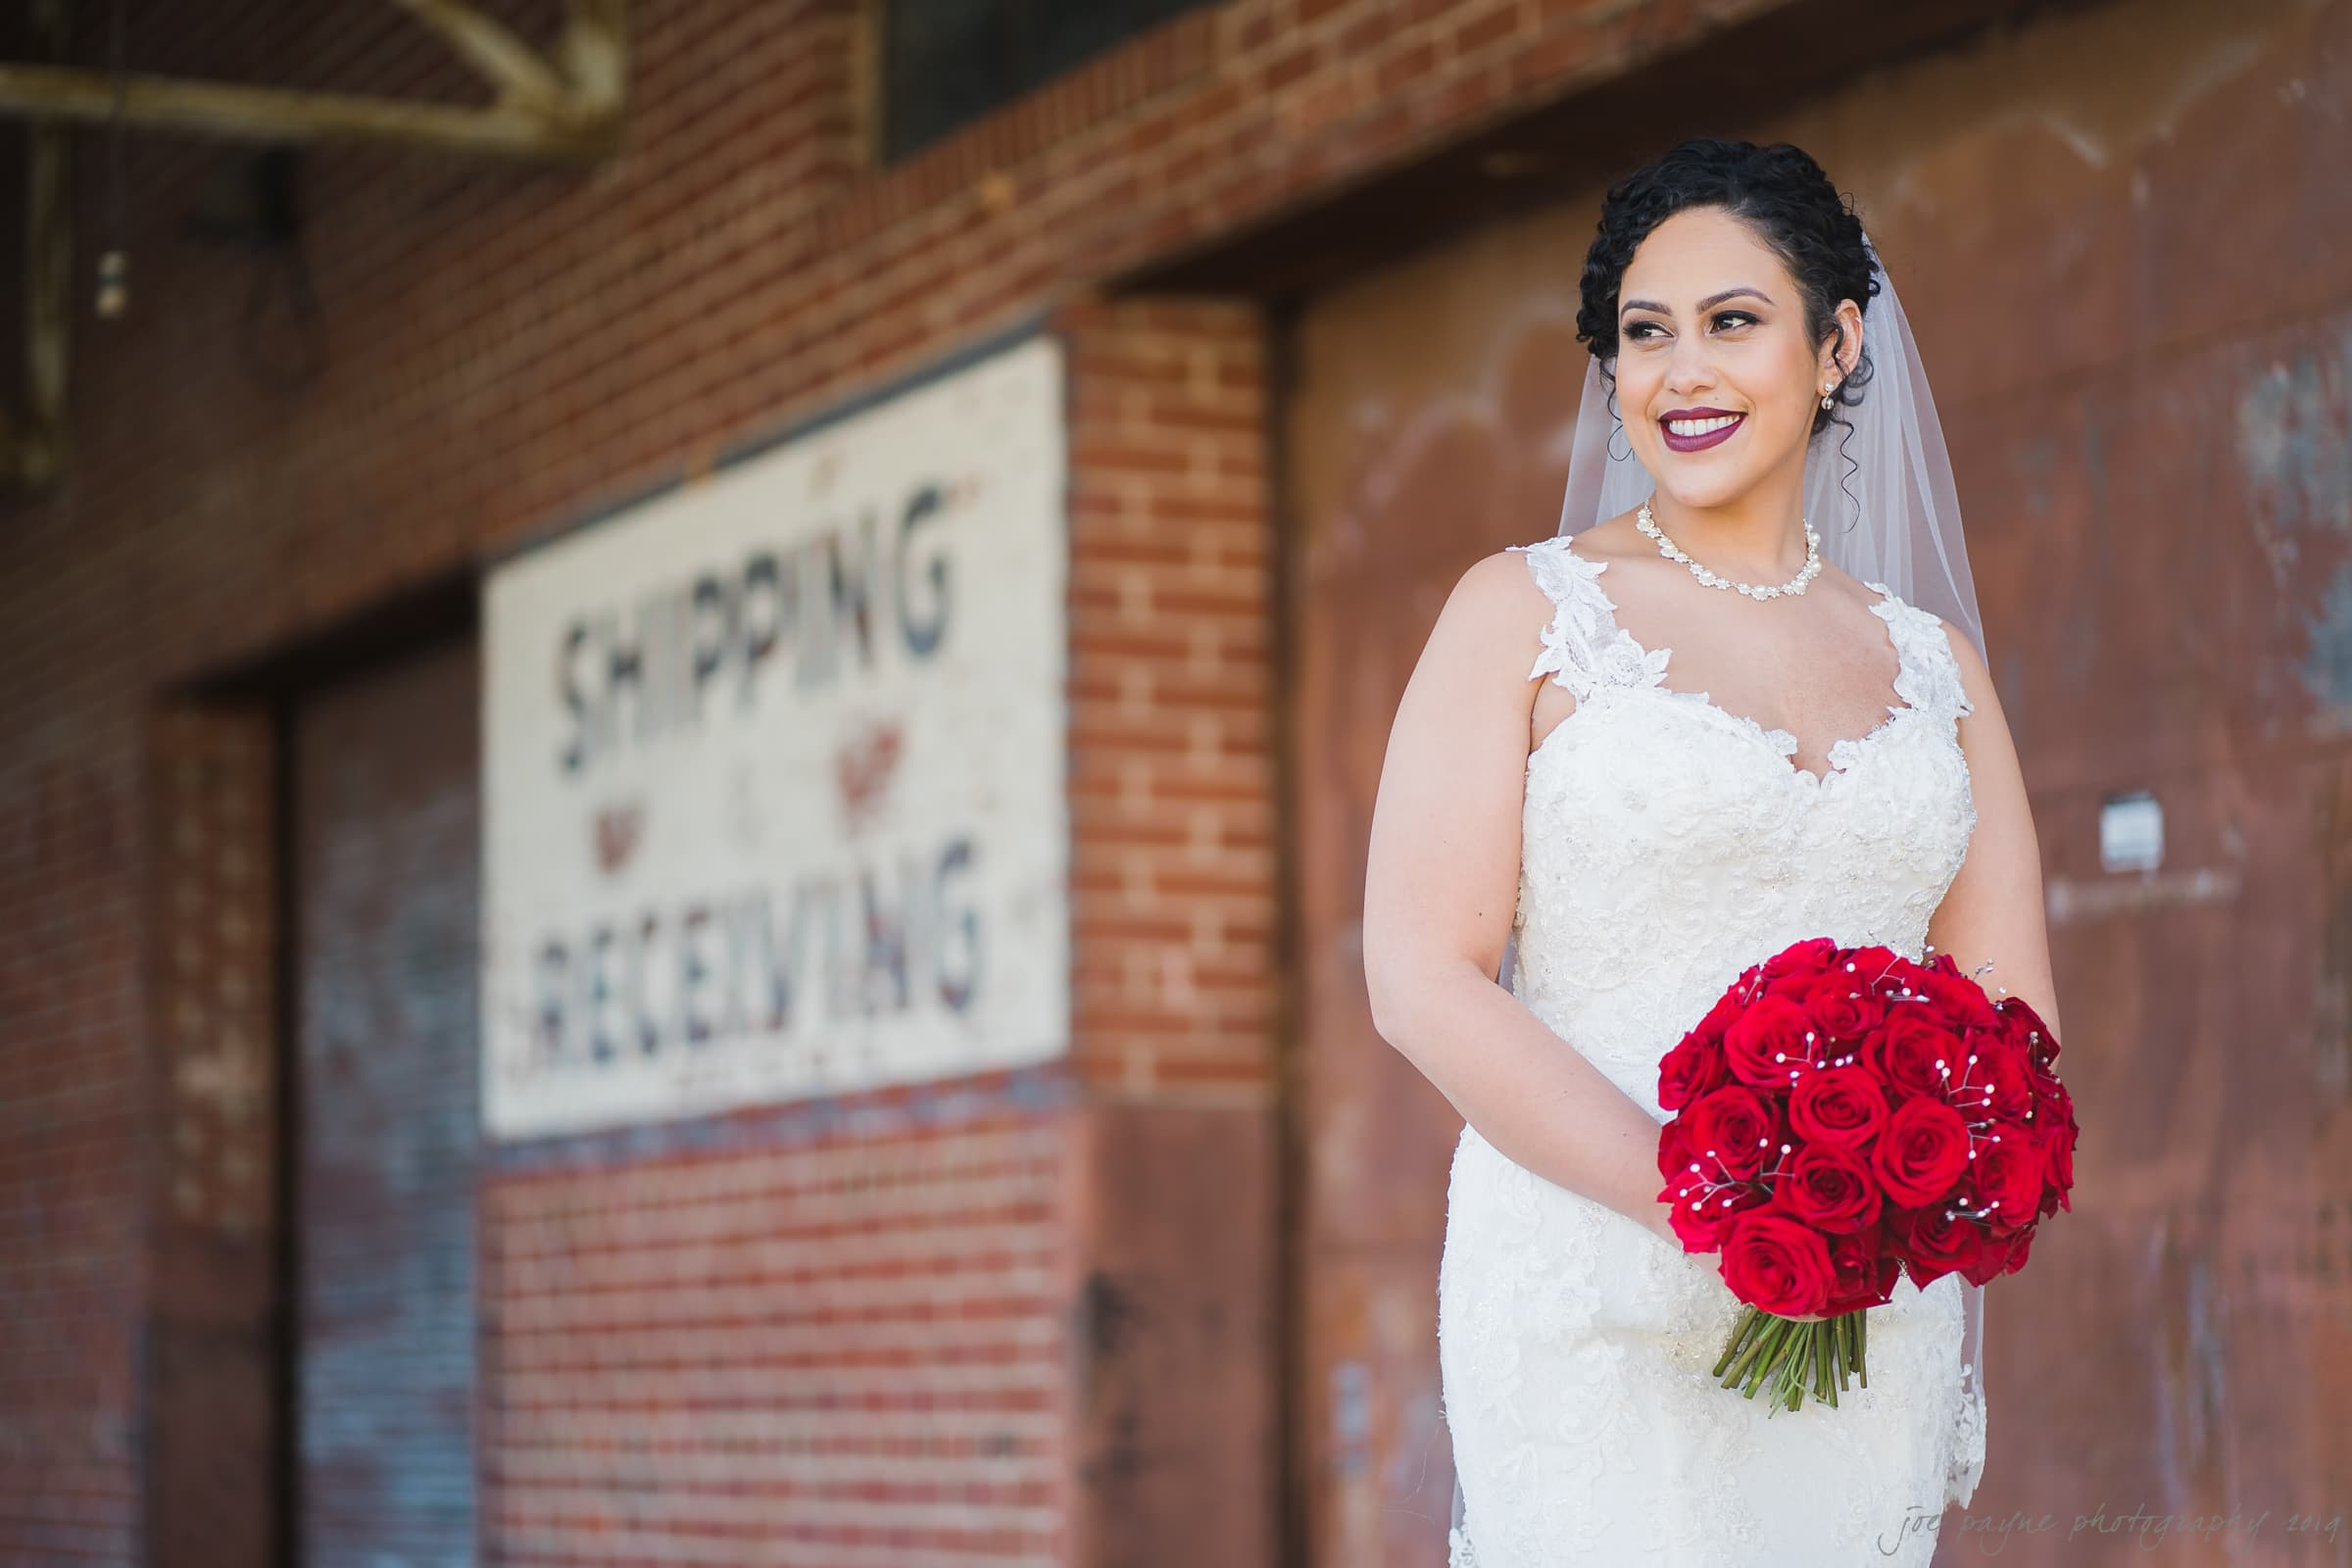 melrose knitting mill raleigh wedding photographer melanie anthony 38